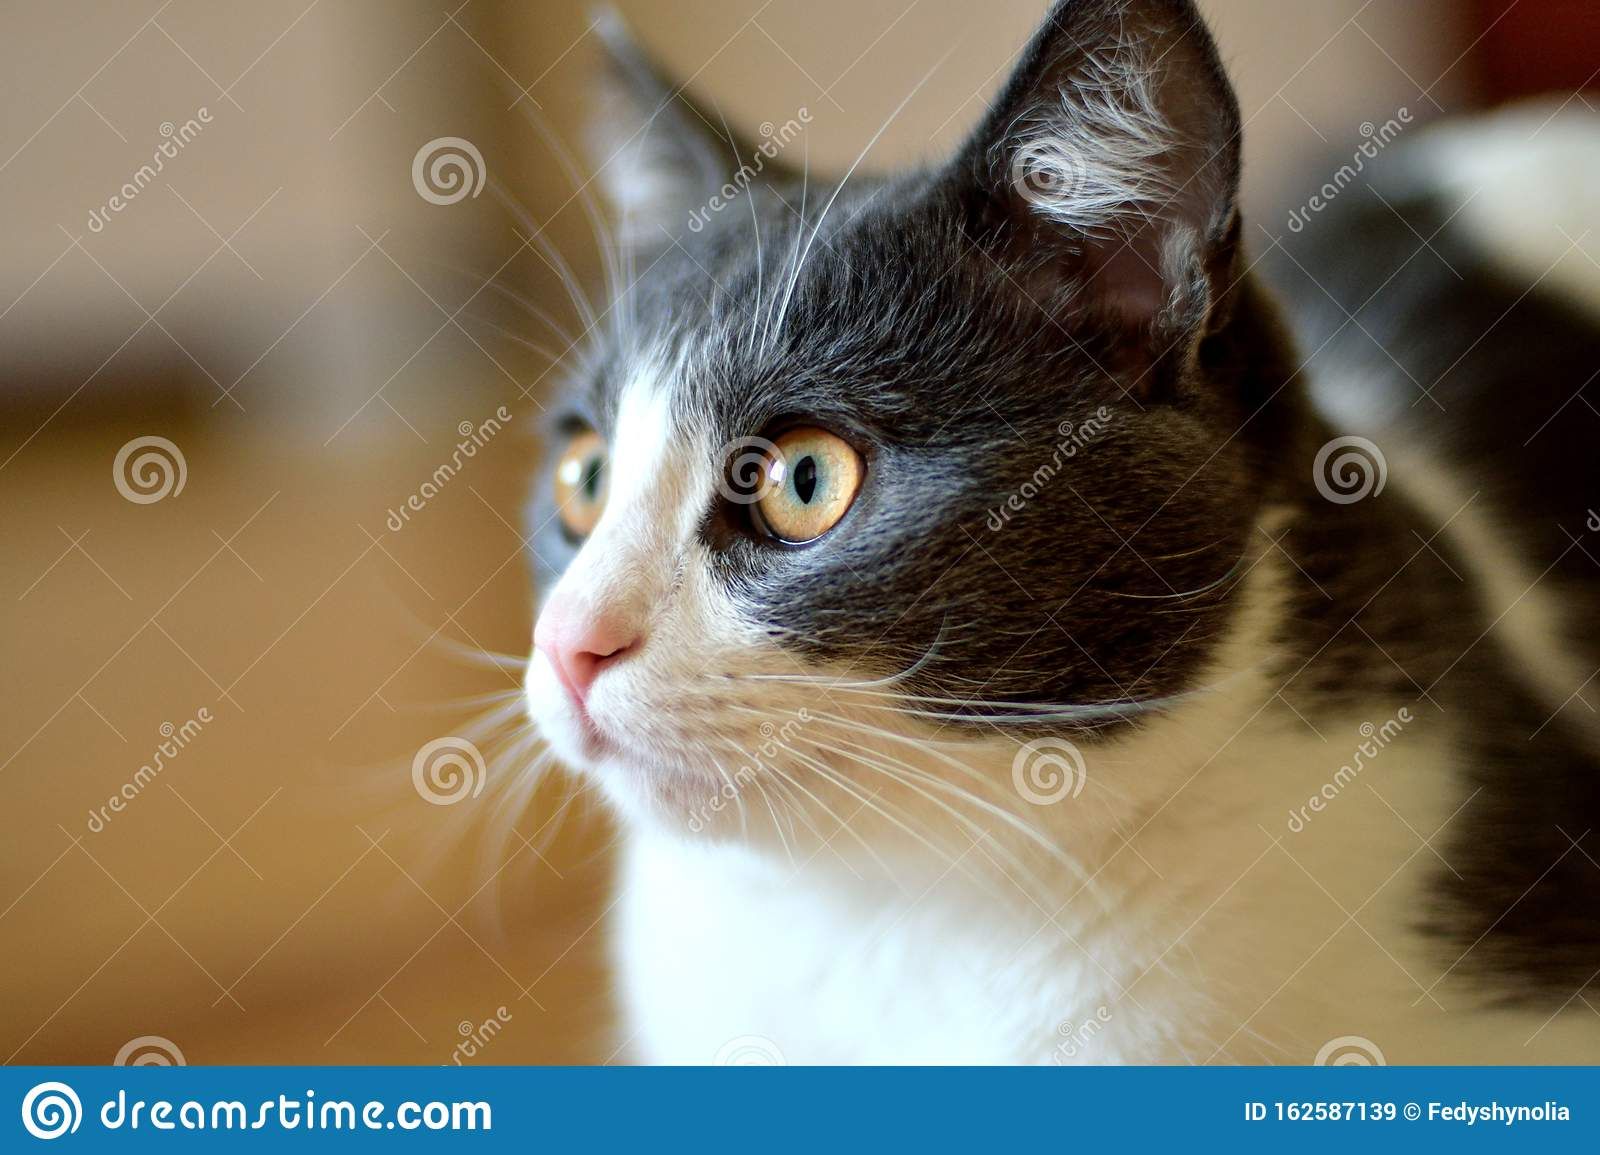 Cat Kitten Kitty Domestic Grey Ehite Big Eyes Beautiful Fluffy Red Pink Nose Cute Clean Bright Love Family Stock Image Image Of Flame Family 162587139